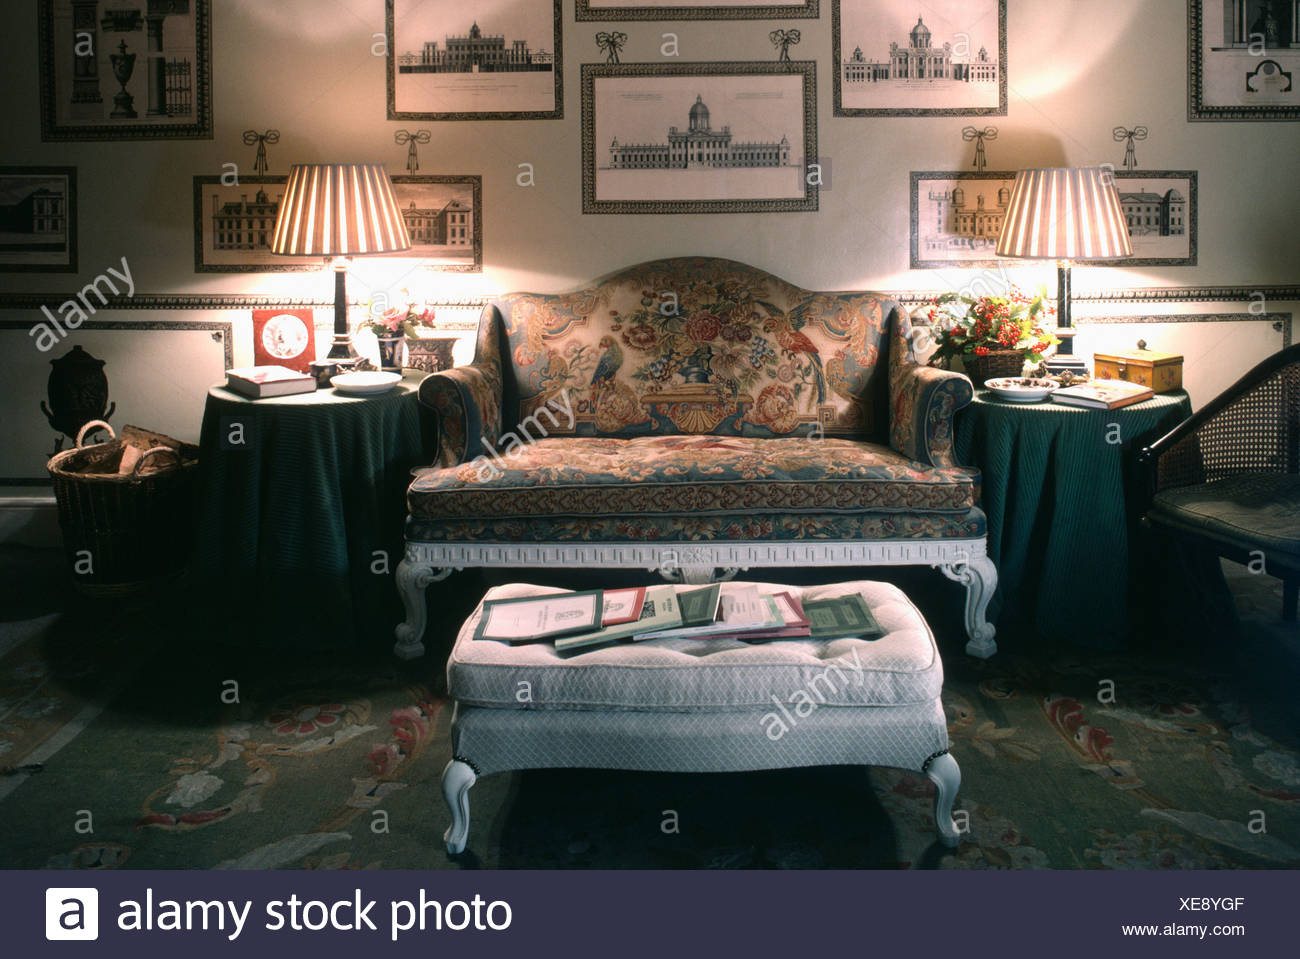 Merveilleux Upholstered Stool In Front Of Antique Sofa In Livingroom Room With Lighted  Lamps And Pictures On The Walls